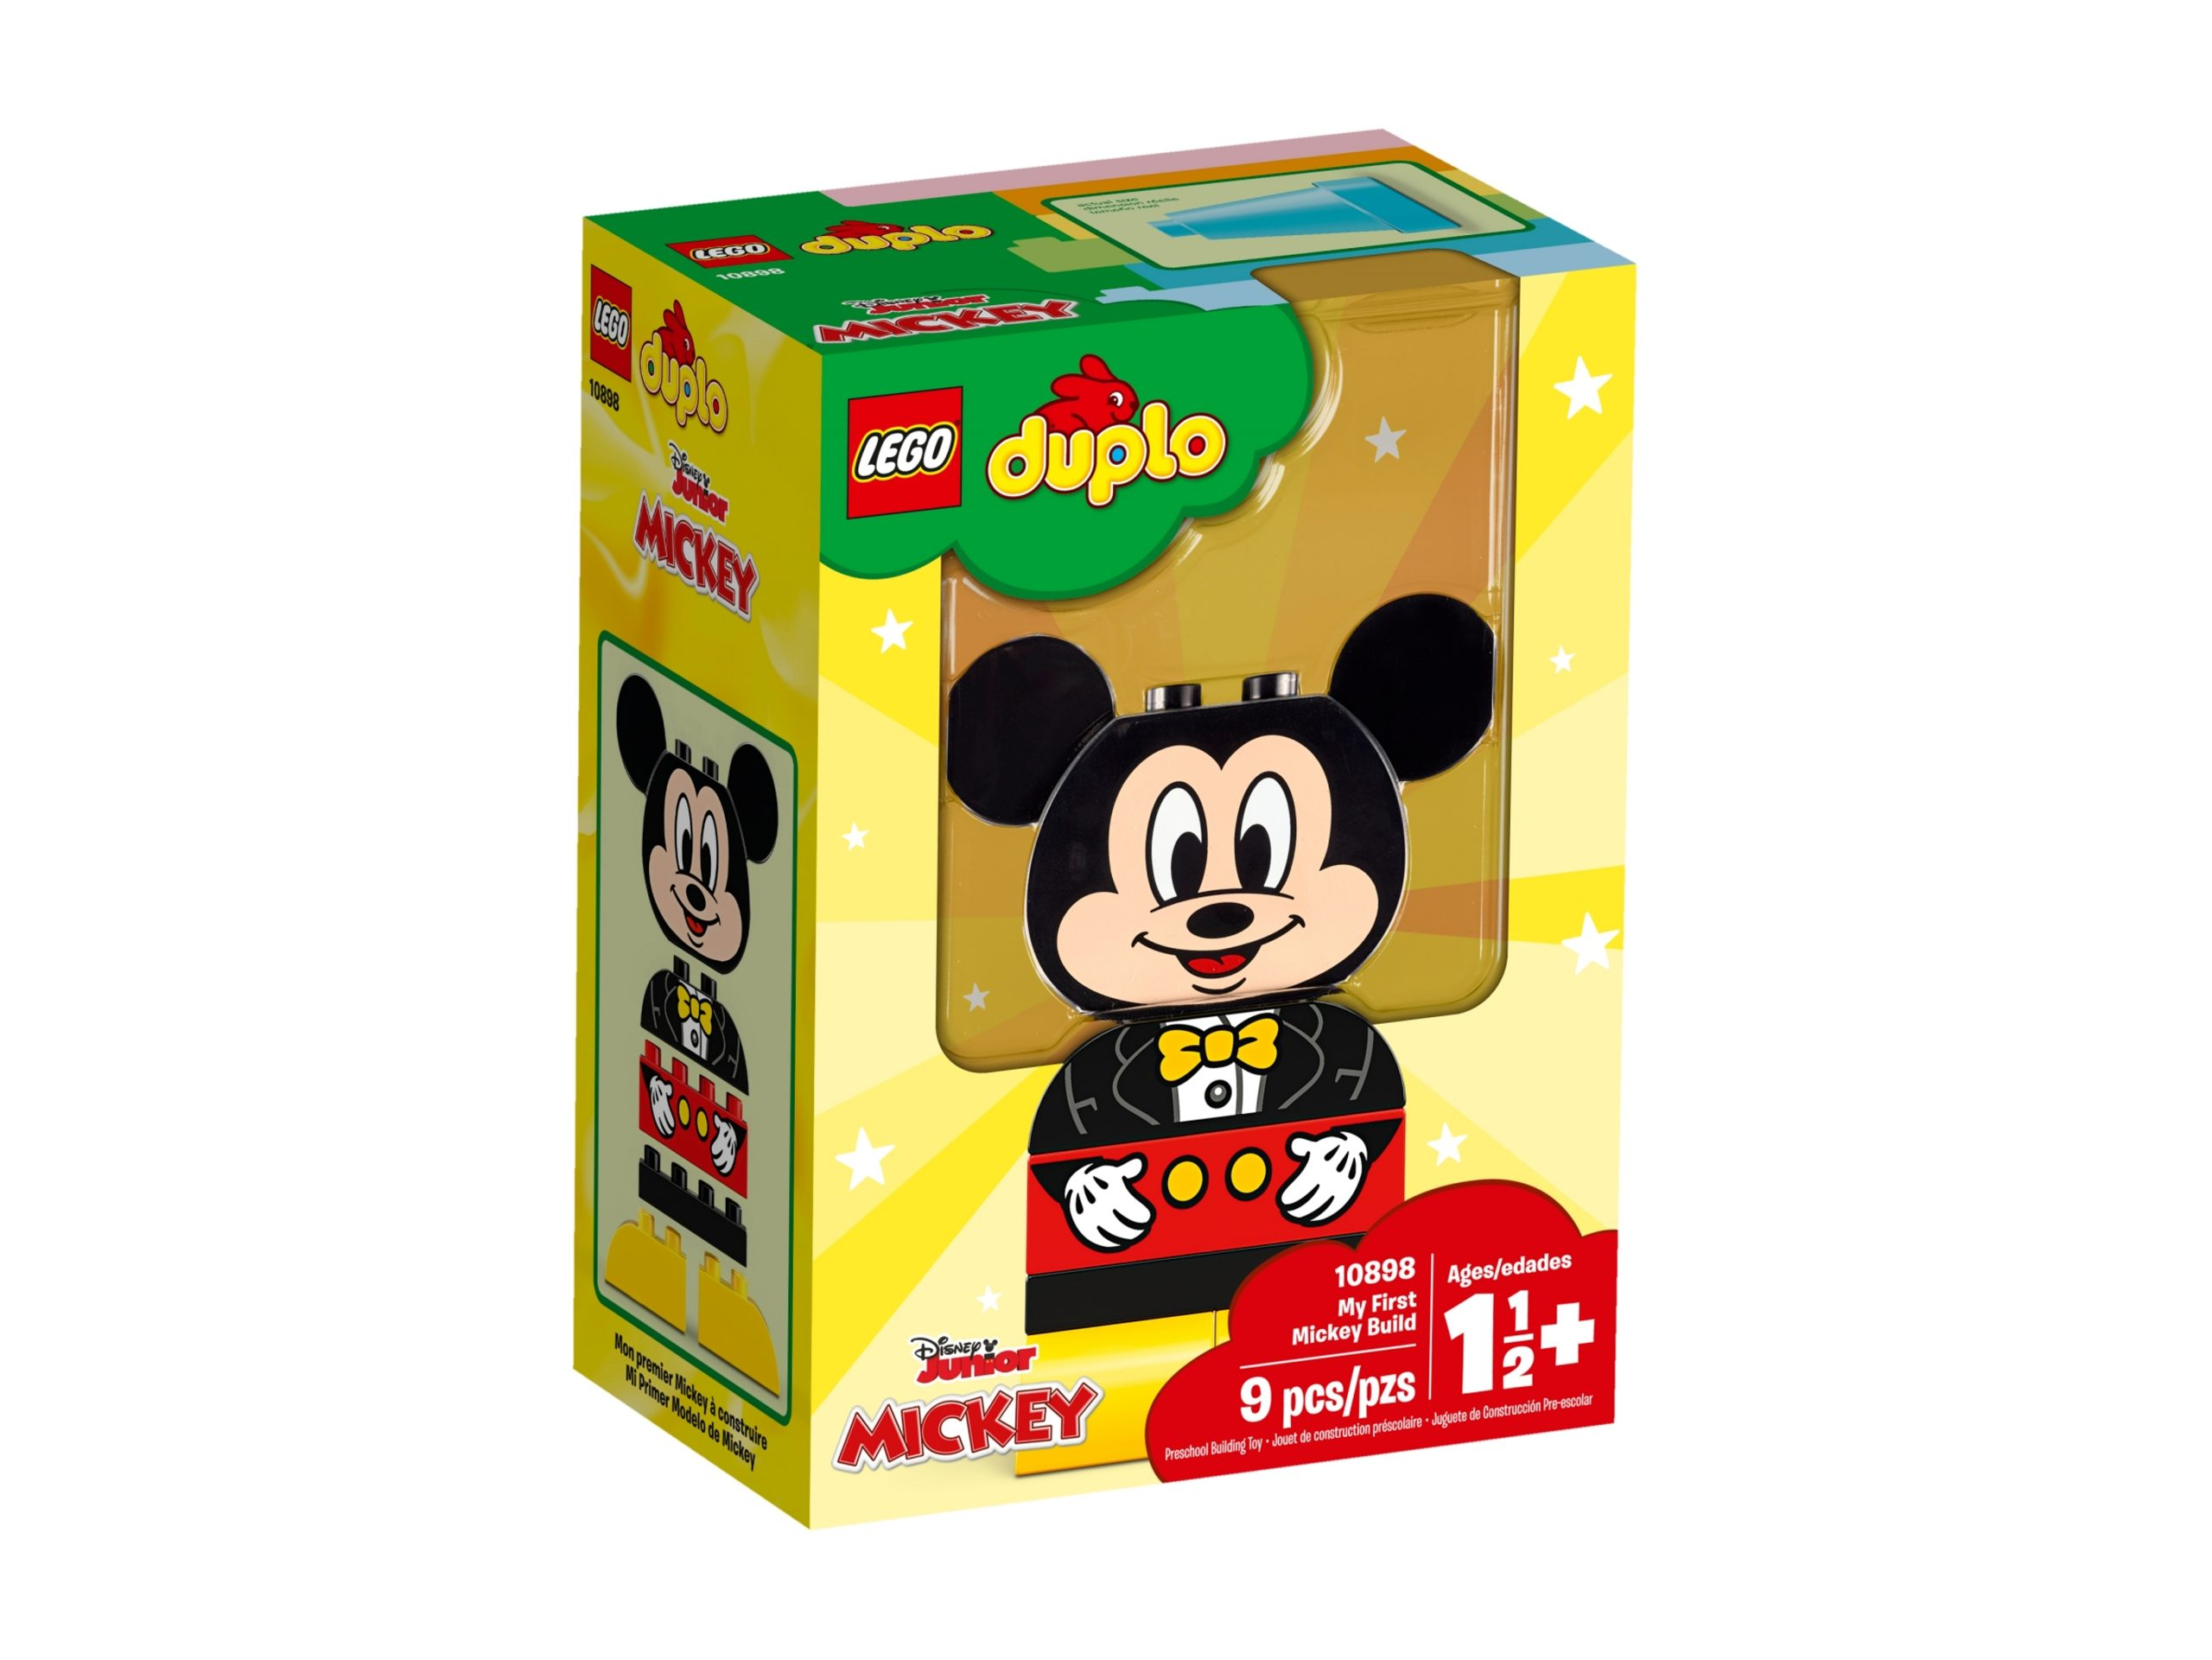 lego 10898 my first mickey build scaled